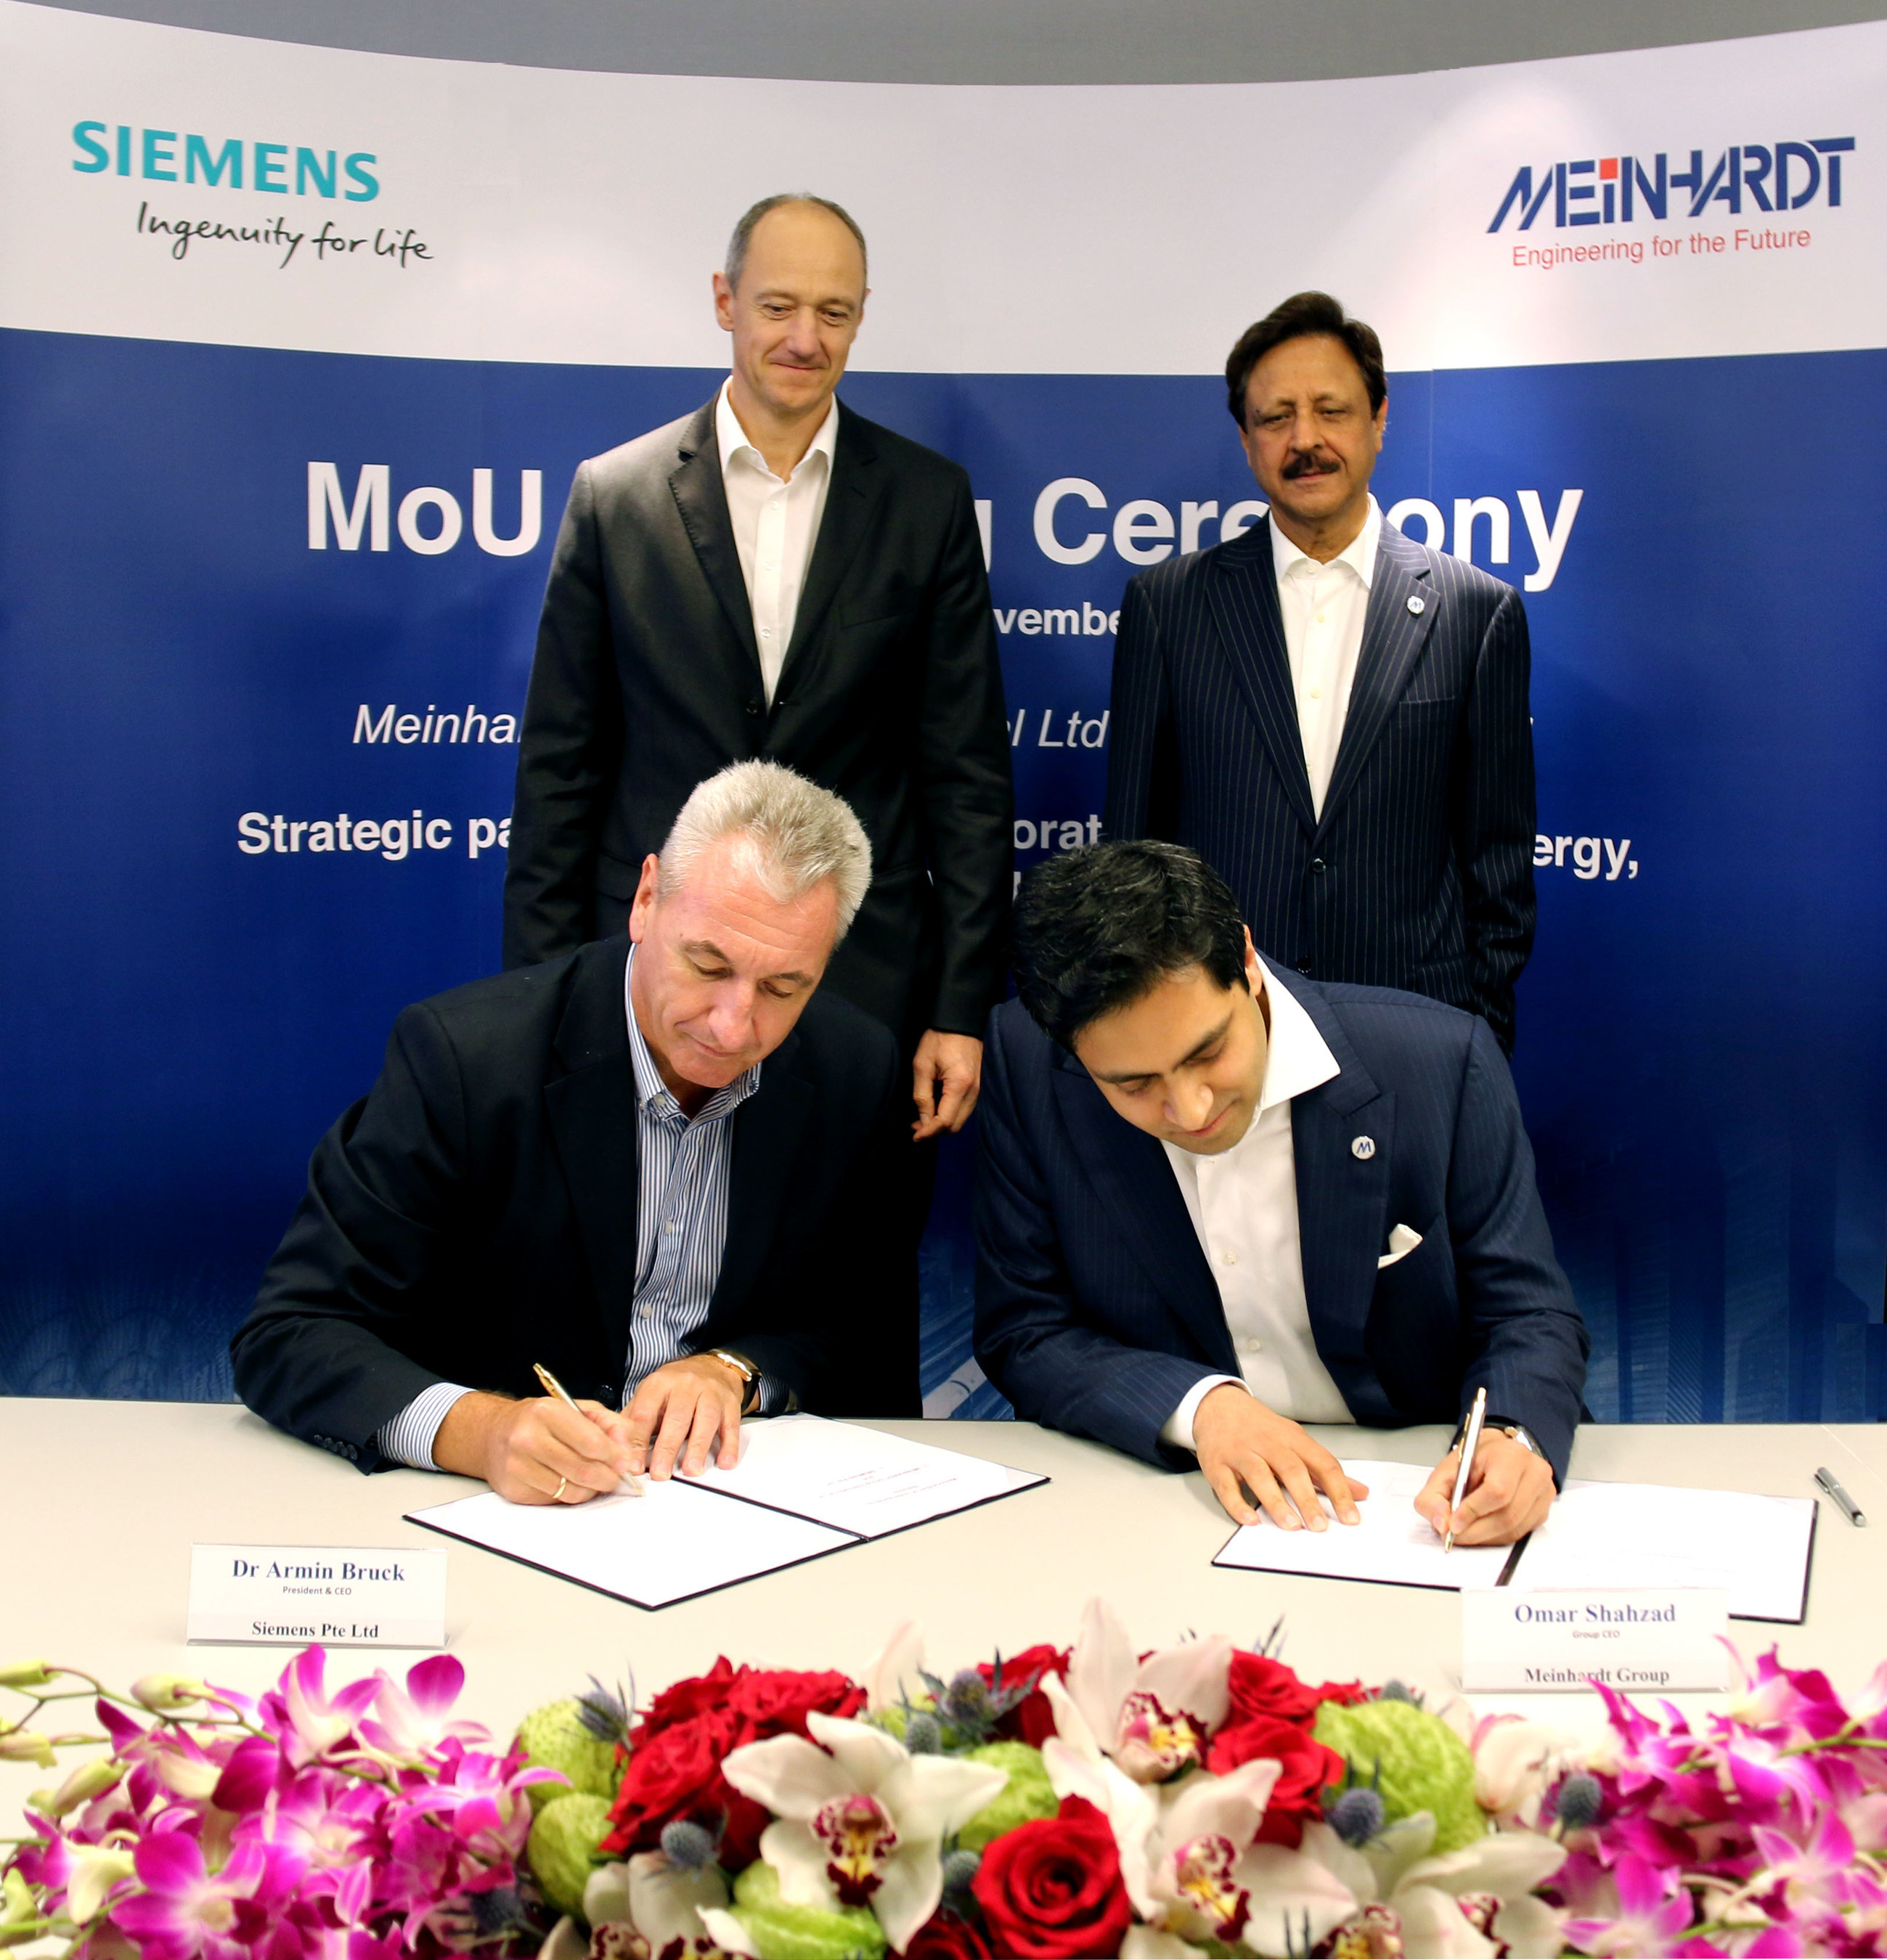 Witnessing the signing ceremony are Dr. Roland Busch Managing Board member of Siemens AG (pictured on the top left) & Dr S. Nasim, Executive Group Chairman, Meinhardt Group International Ltd (top right). Dr. Armin Bruck, President and CEO Siemens Pte Ltd is pictured on the bottom left & Mr Omar Shahzad, Group CEO, Meinhardt Group International Ltd is pictured on the bottom right.